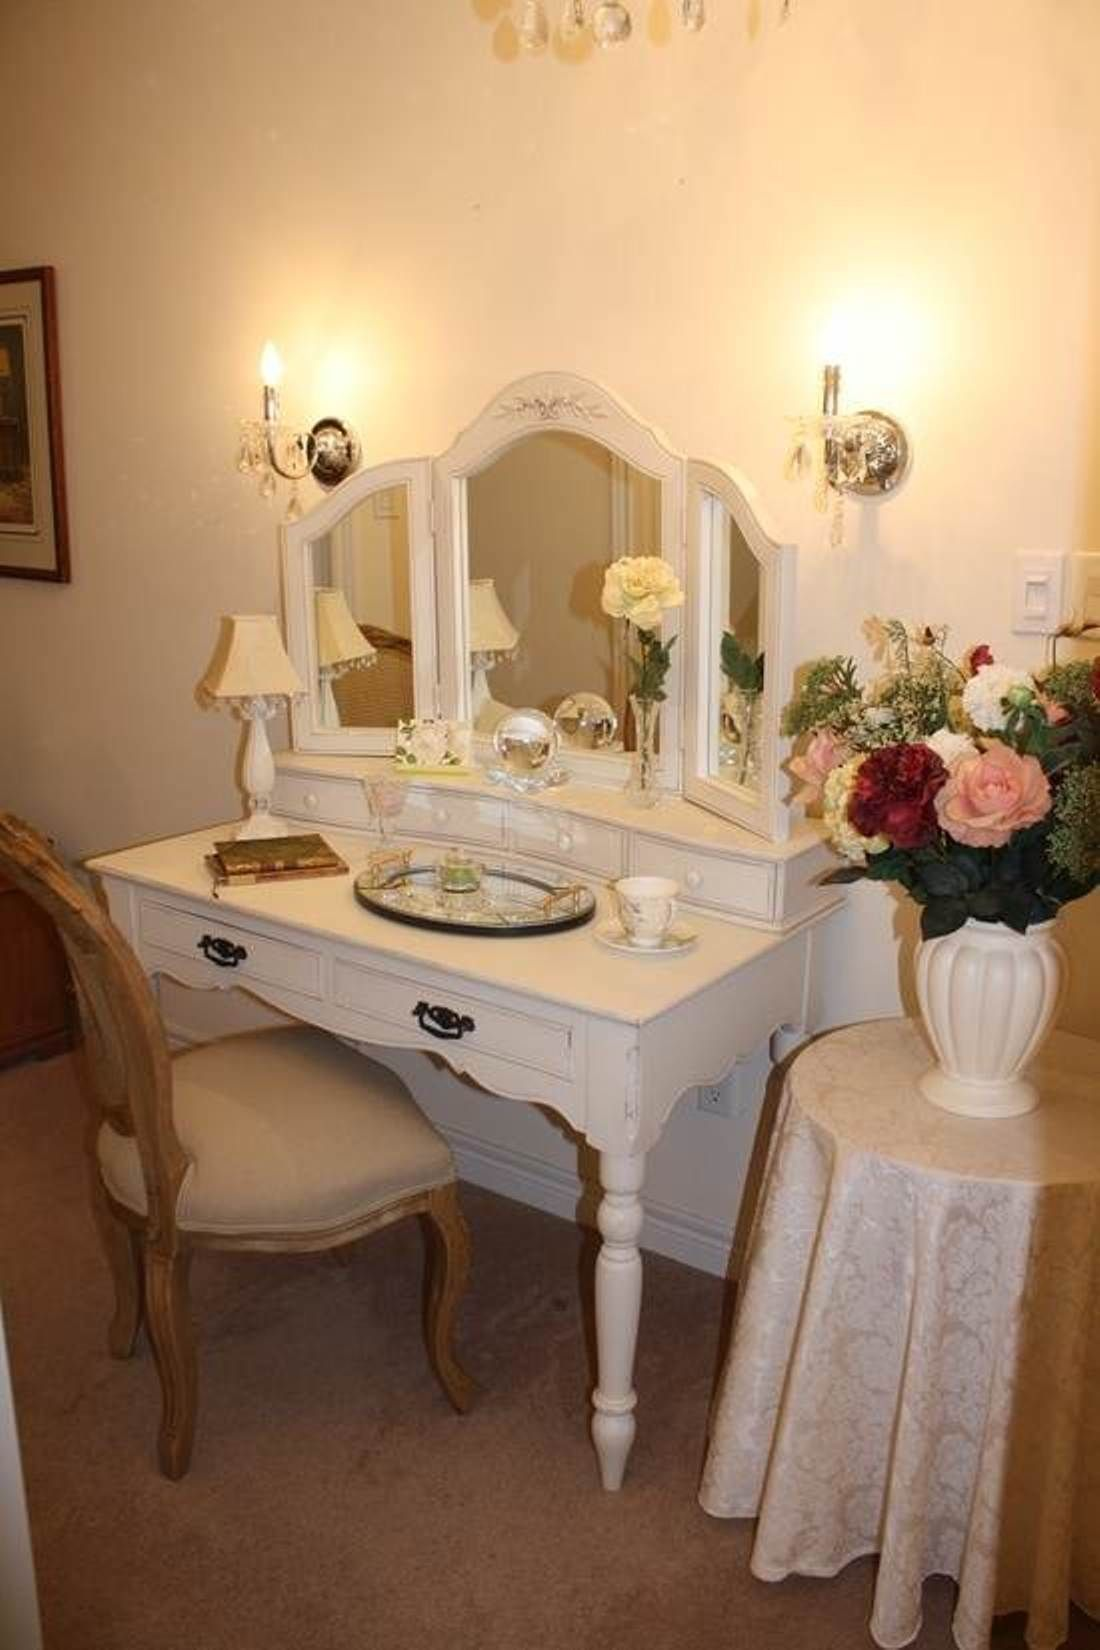 Vanity Lights Table : Simple White Small Wooden Antique Vanity Table Design With Elegant Chair On Brown Floor As Well ...